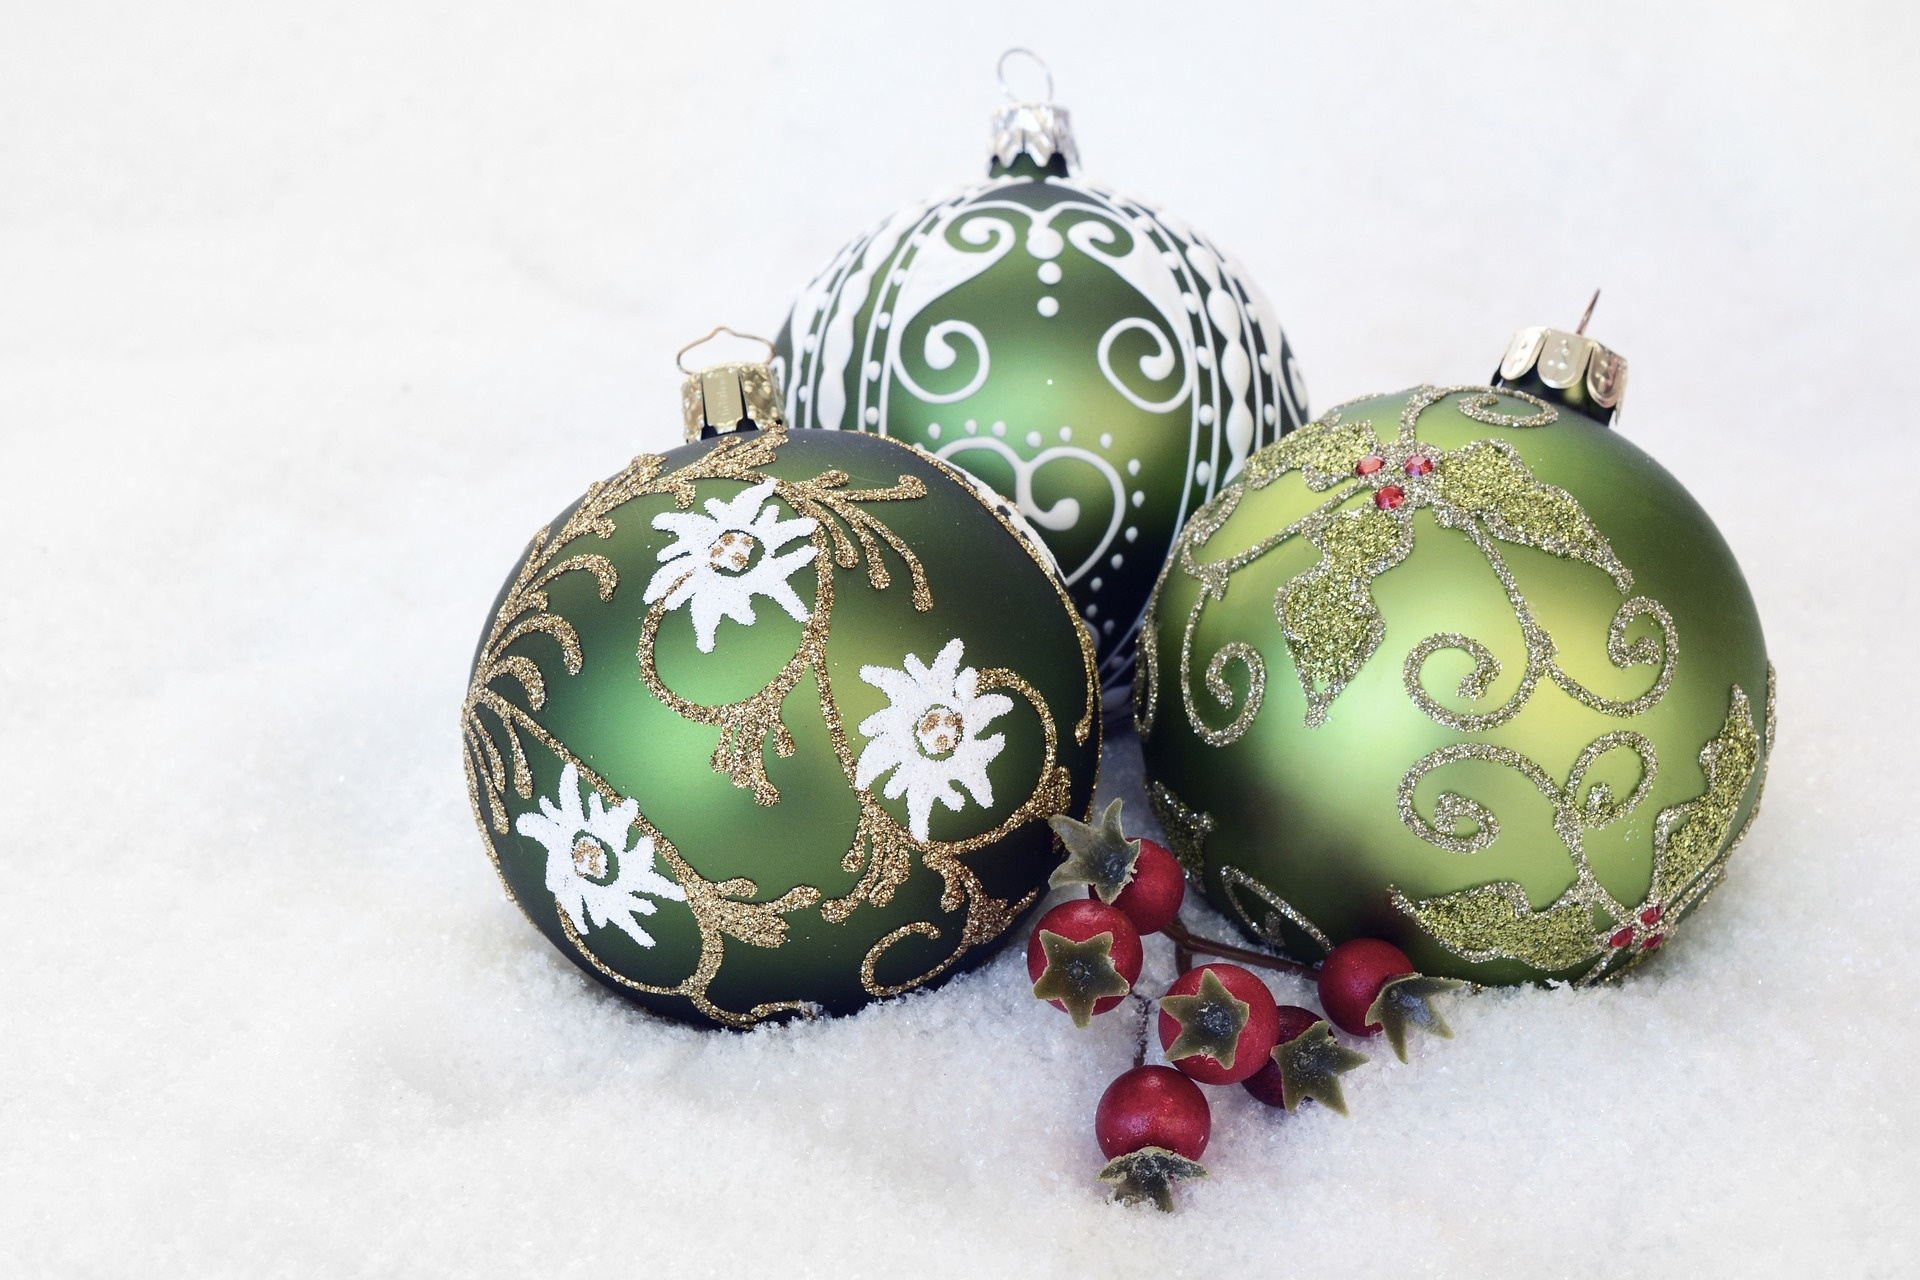 christmasbauble2956231_1920_02